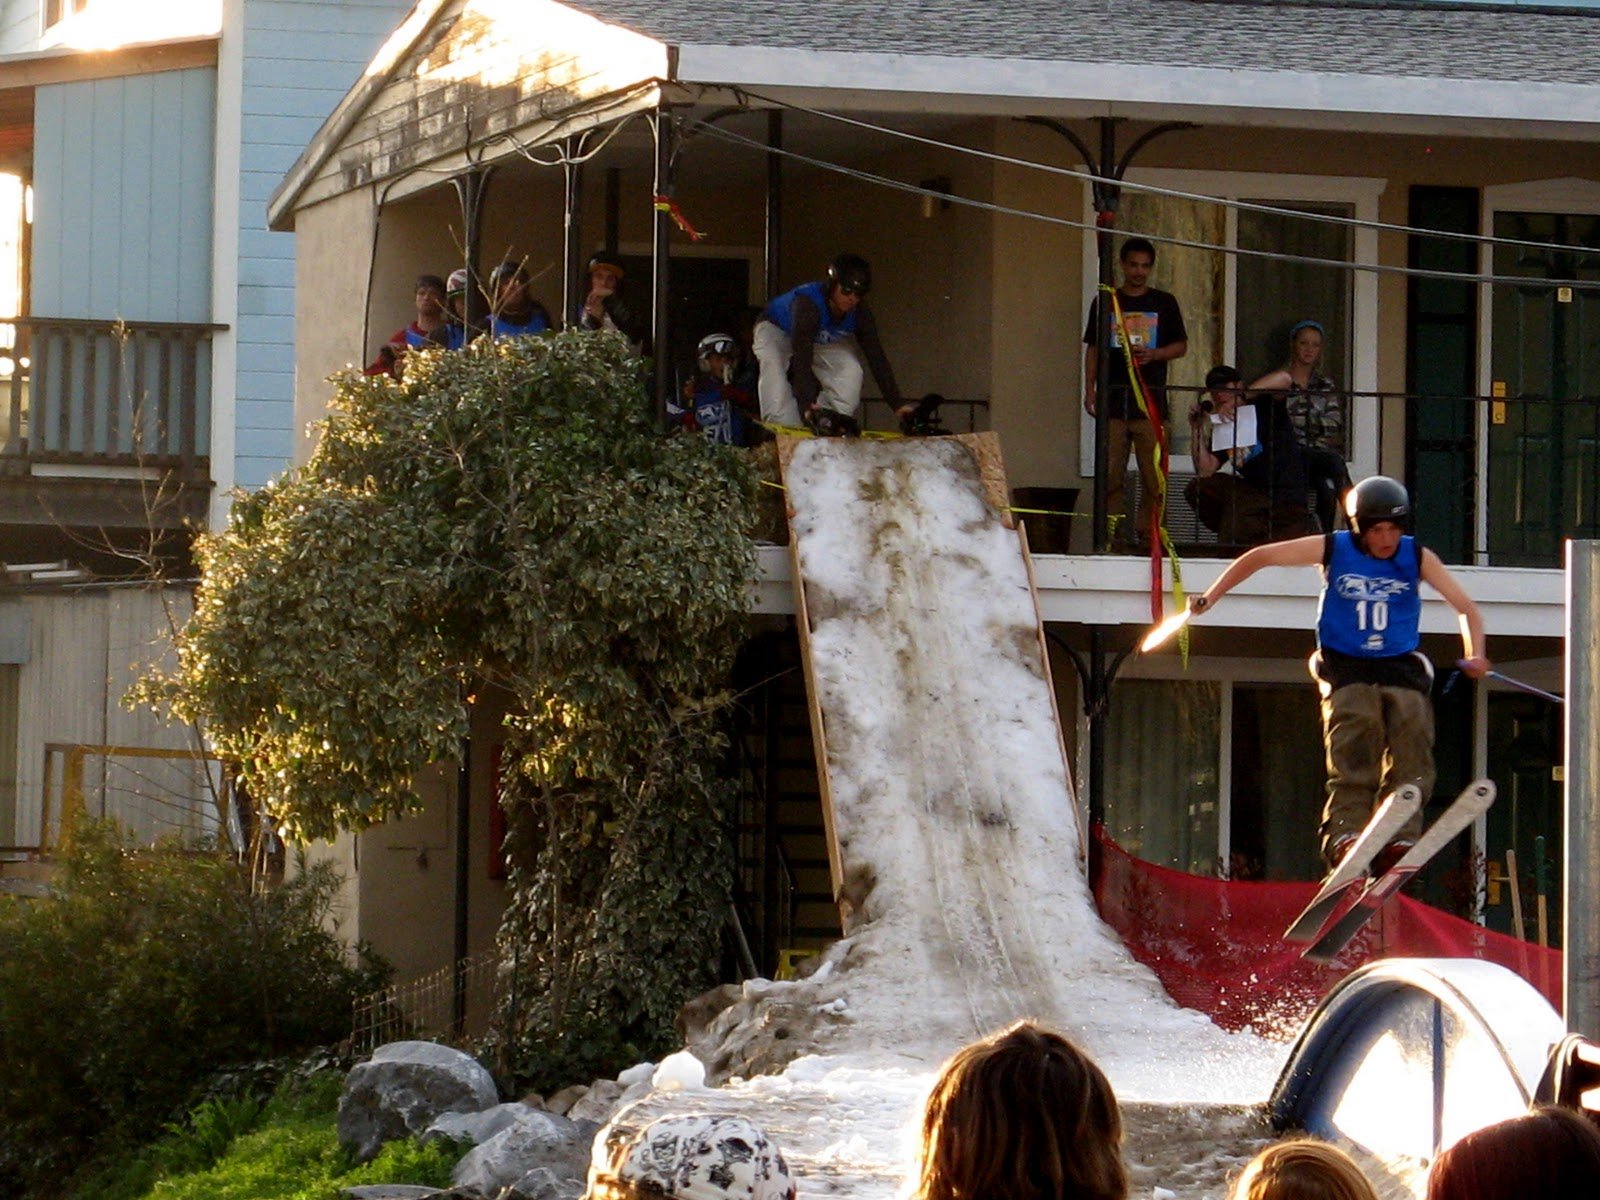 Snow was brought in and piled from the second floor of the Murphys Hotel  into an obstacle course for skiers and snowboarders. The amateur  contestants were ...